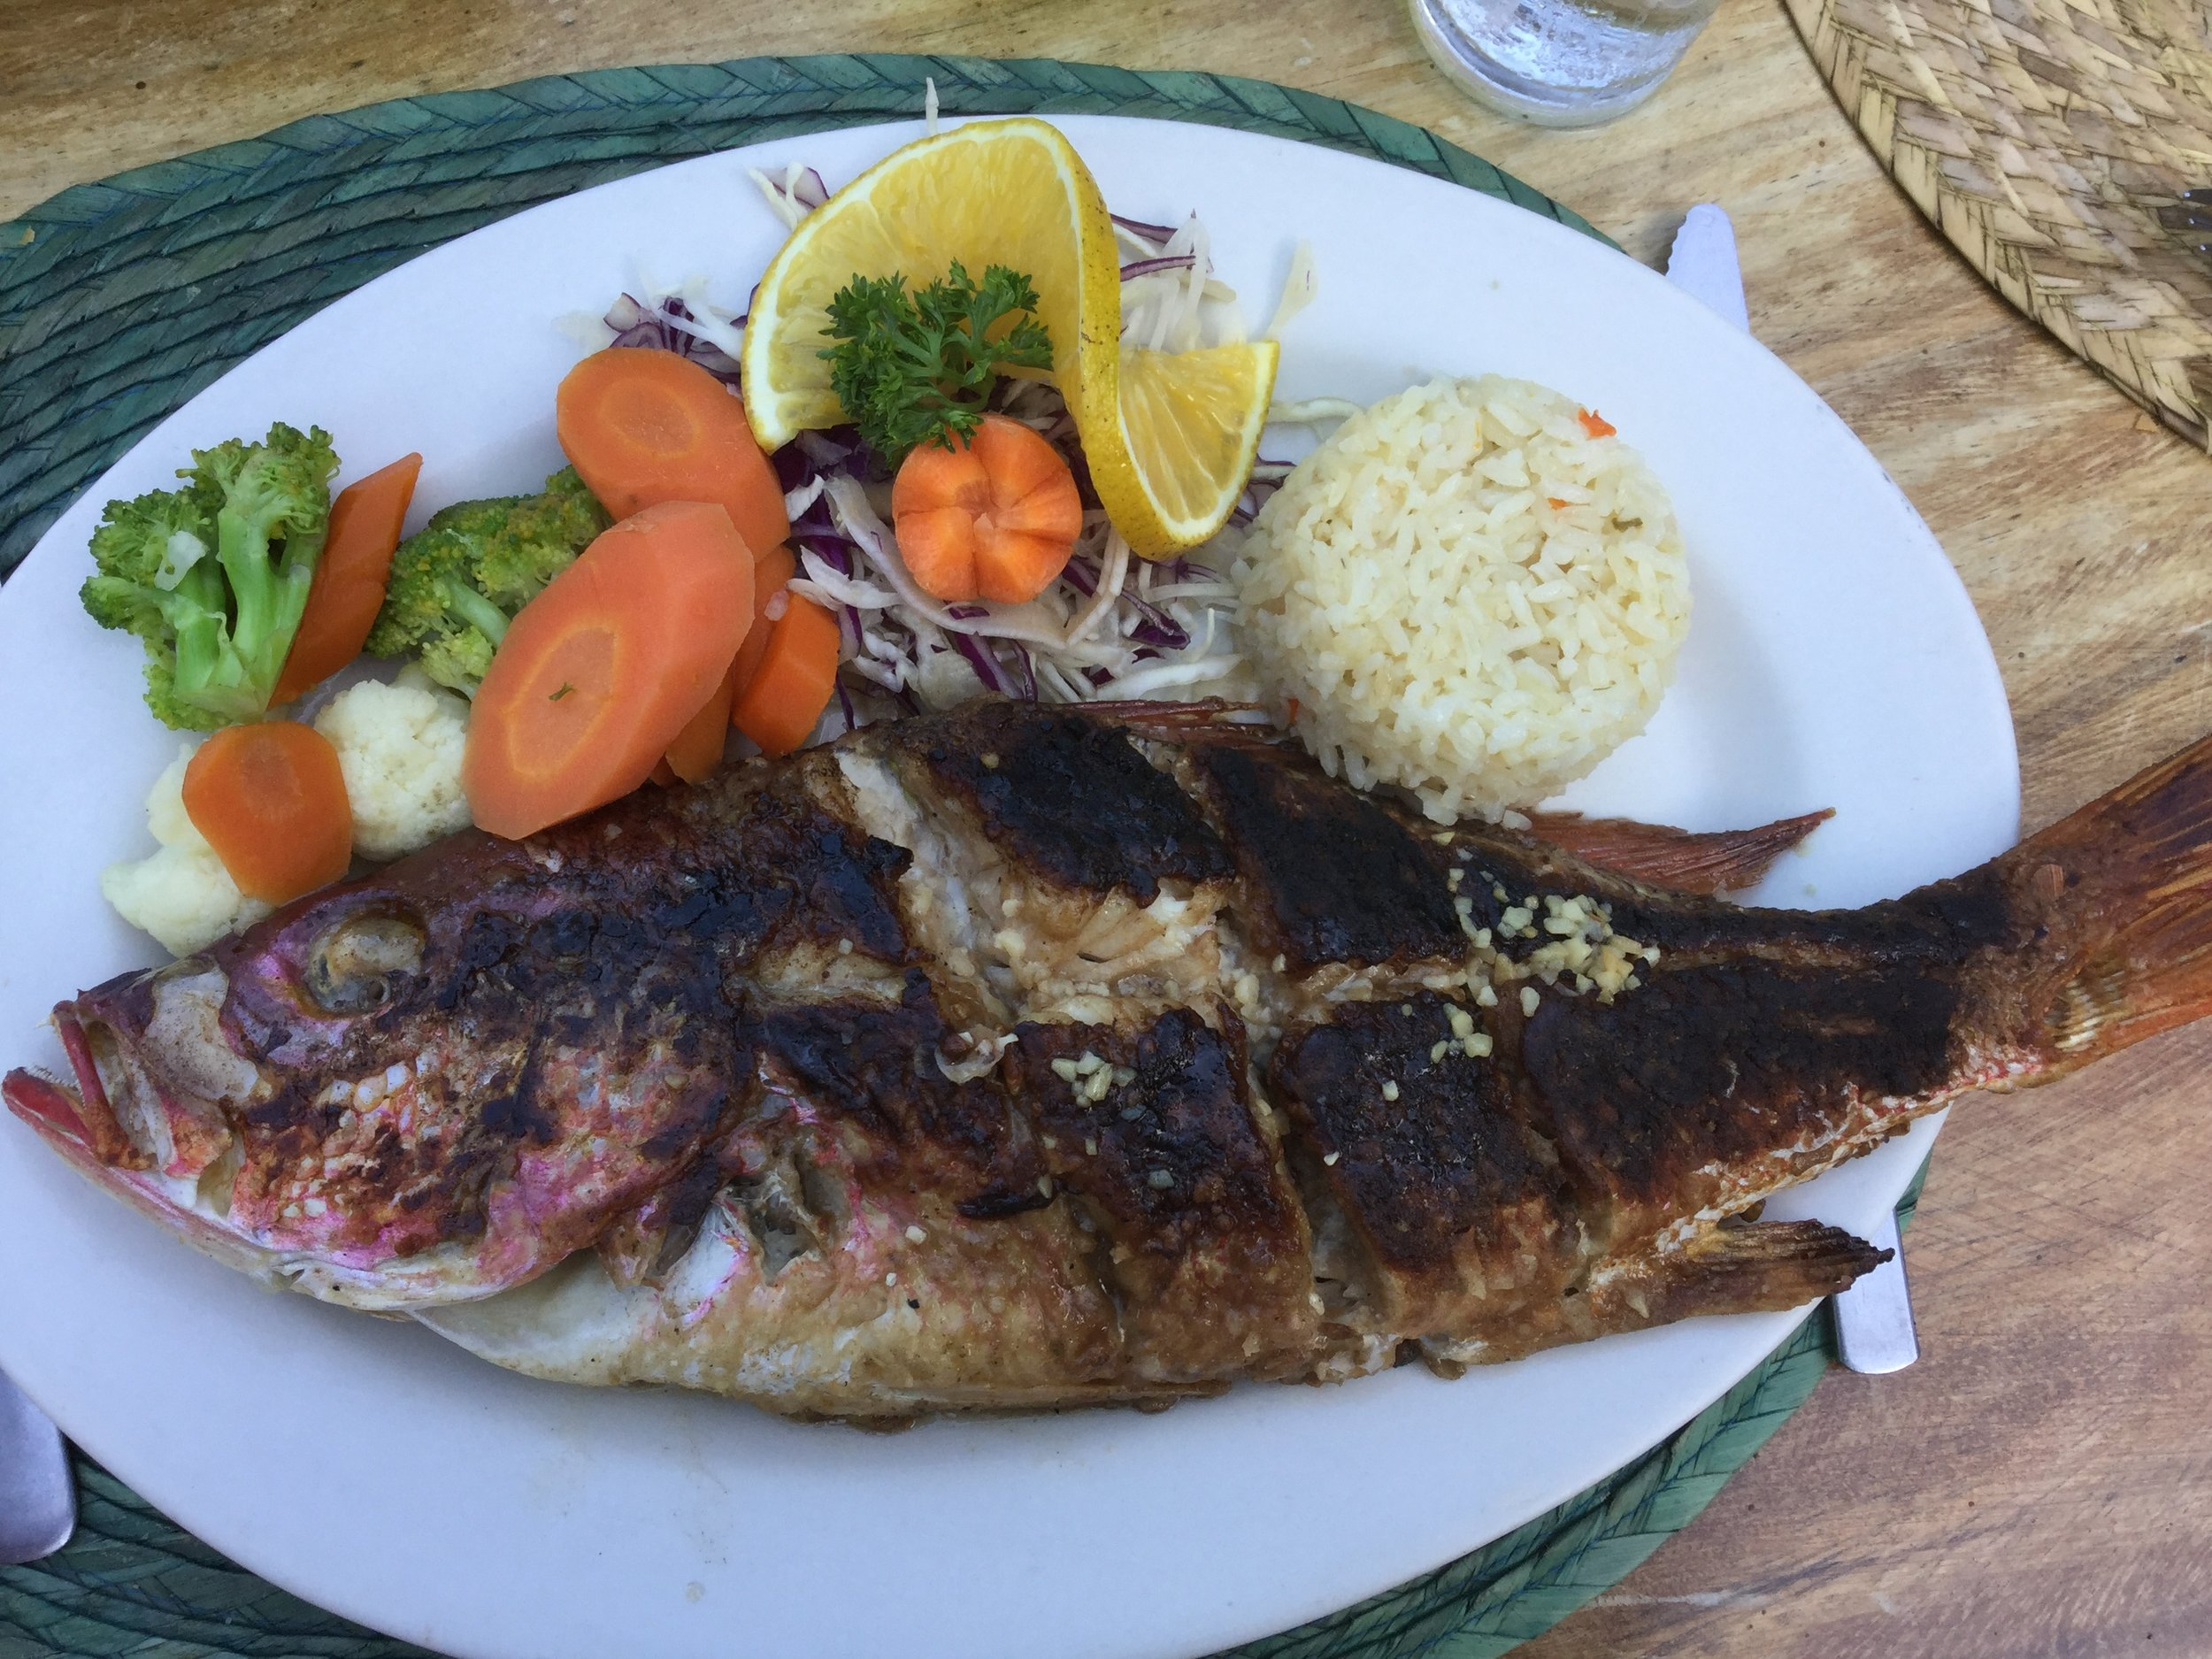 Lili had red snapper. We all had some of it in fact - and it was very tasty.